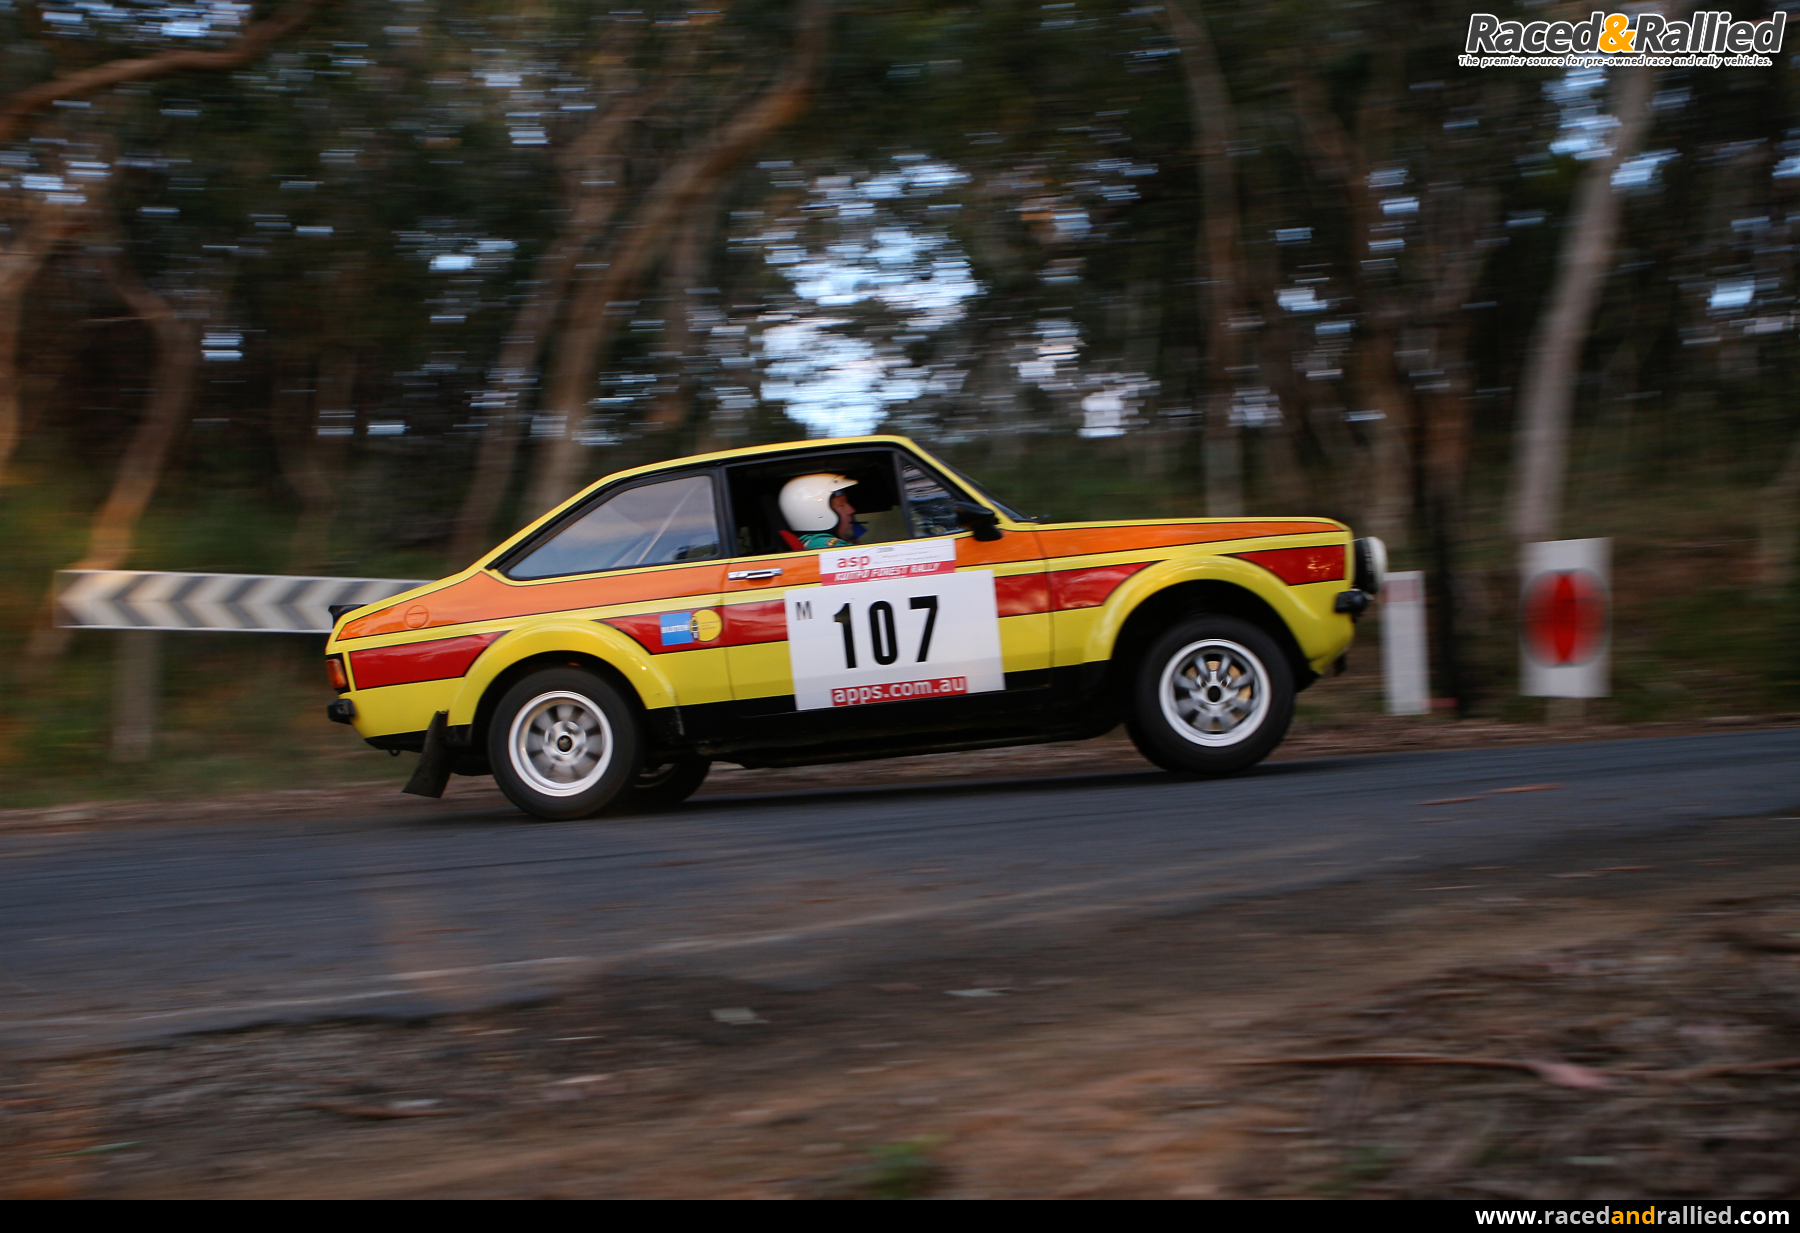 Car Sale Contract >> Escort Gr 4 BDG ex works Ford Australia rally car | Rally Cars for sale at Raced & Rallied ...